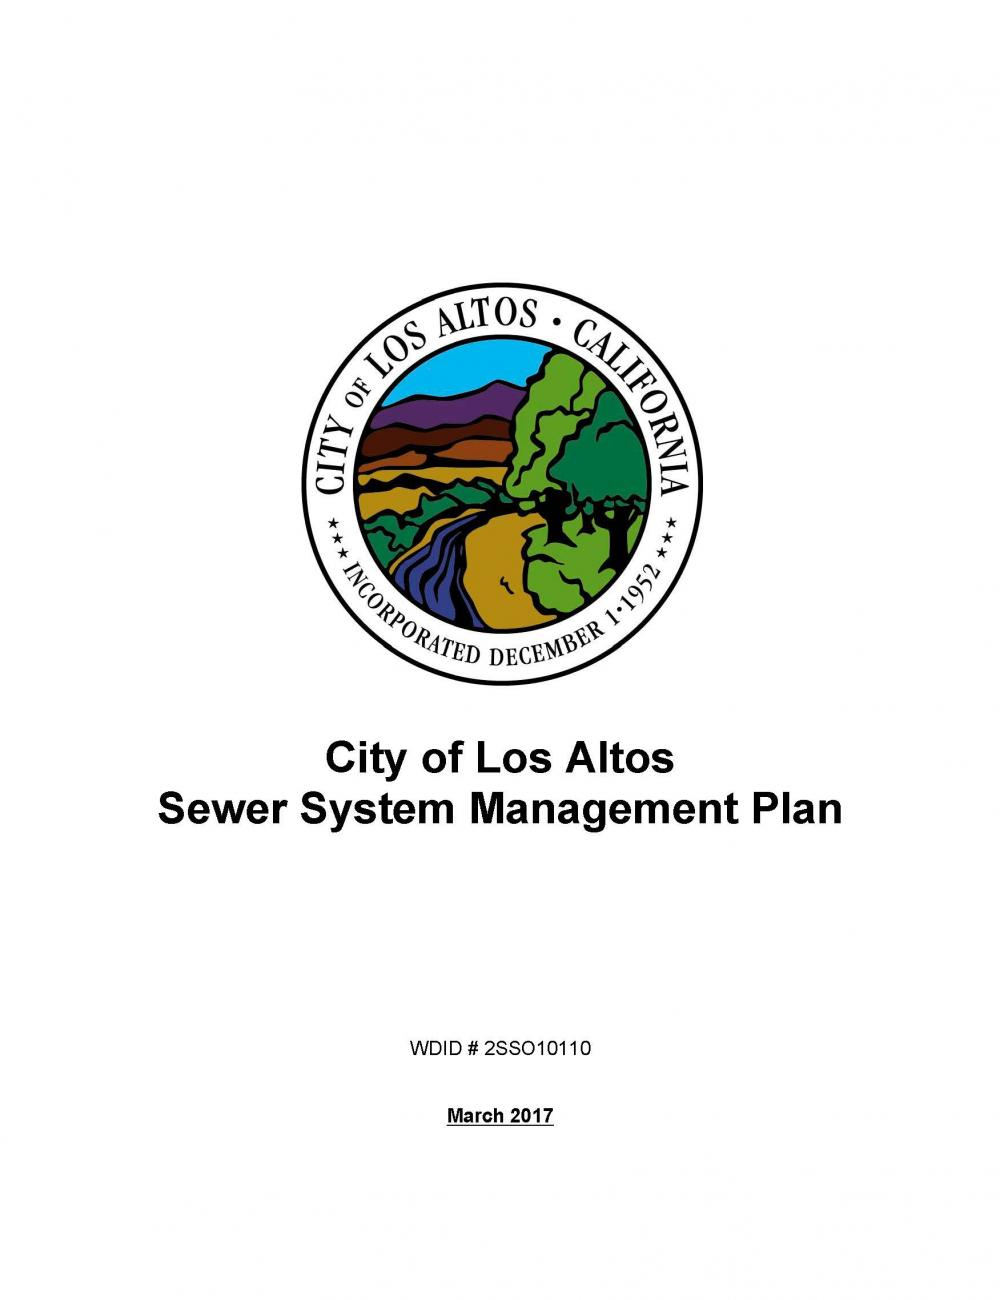 The Sewer System Management Plan SSMP Identifies Goals City Has Set For Operation And Maintenance Of